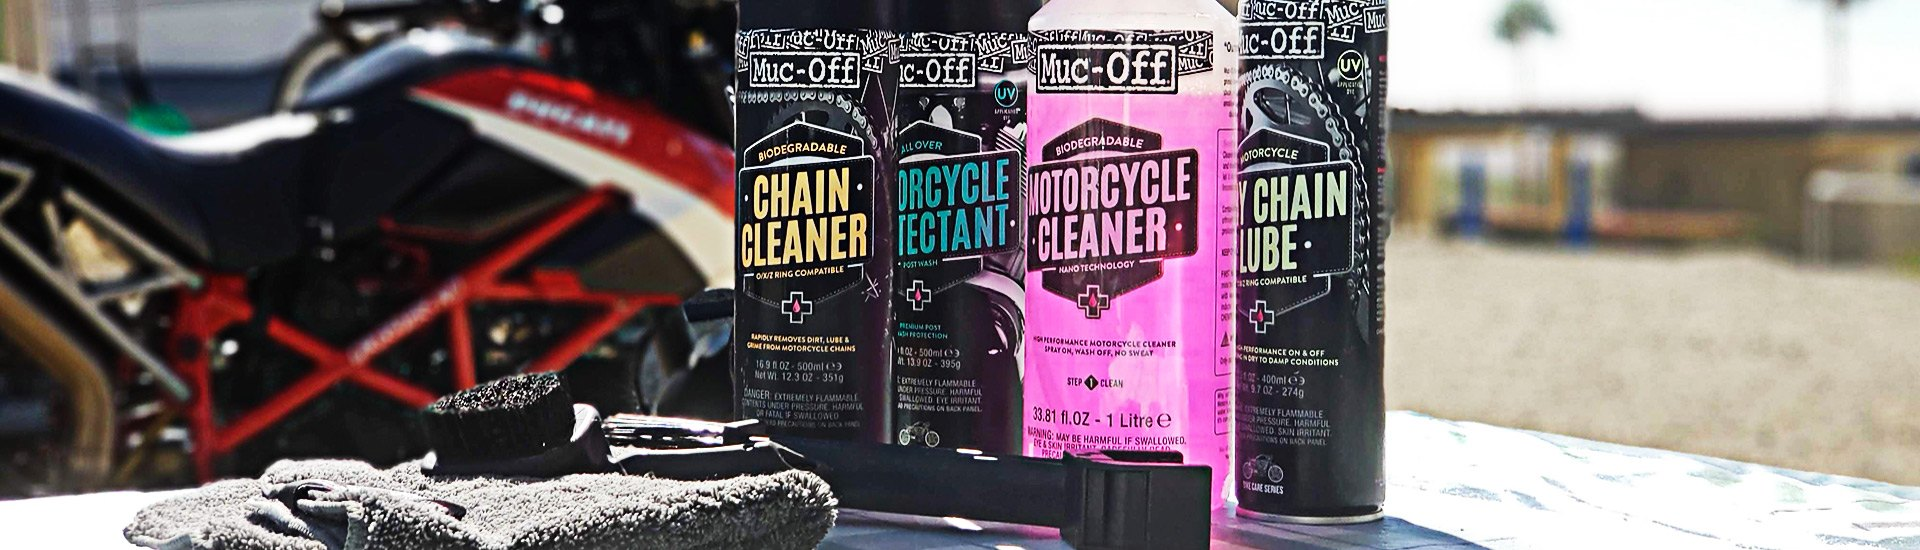 Motorcycle Oils & Chemicals